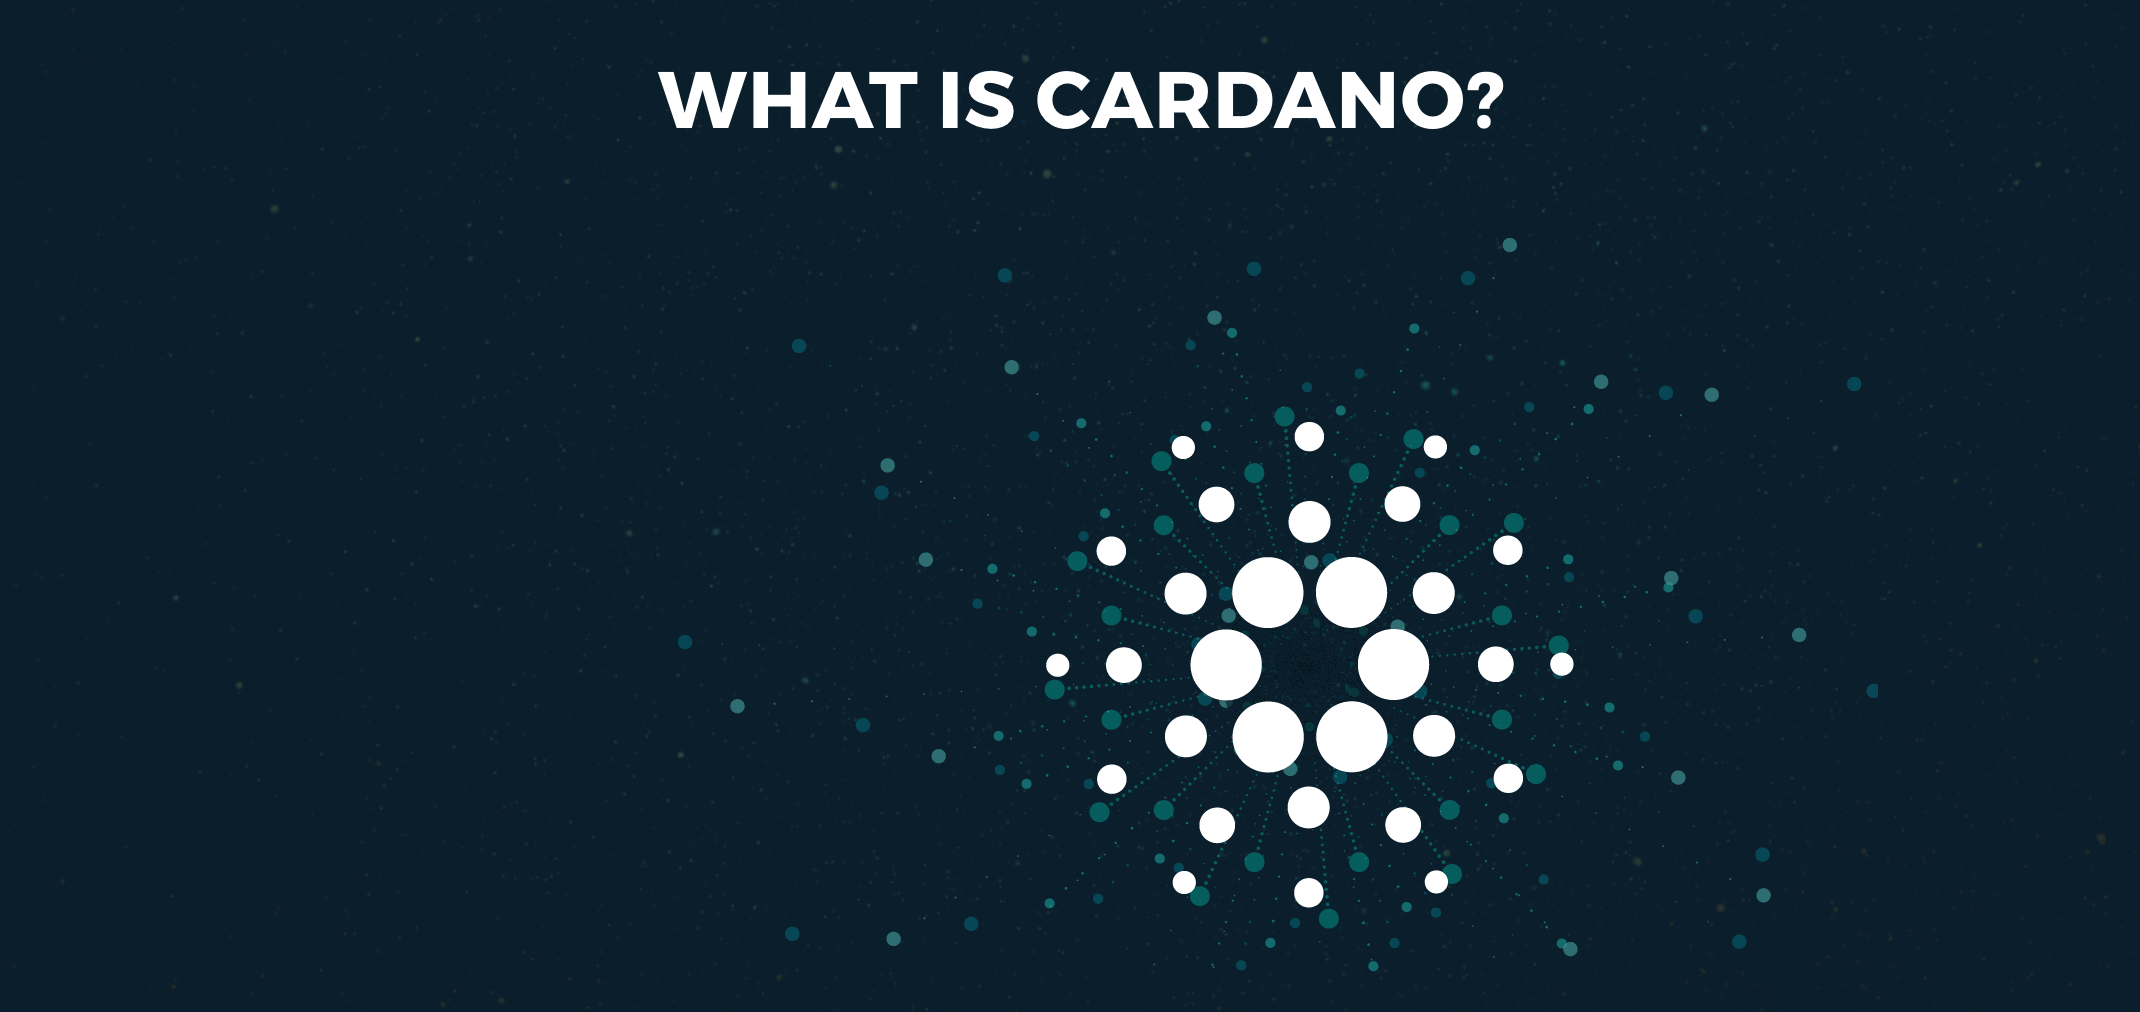 What is Cardano?